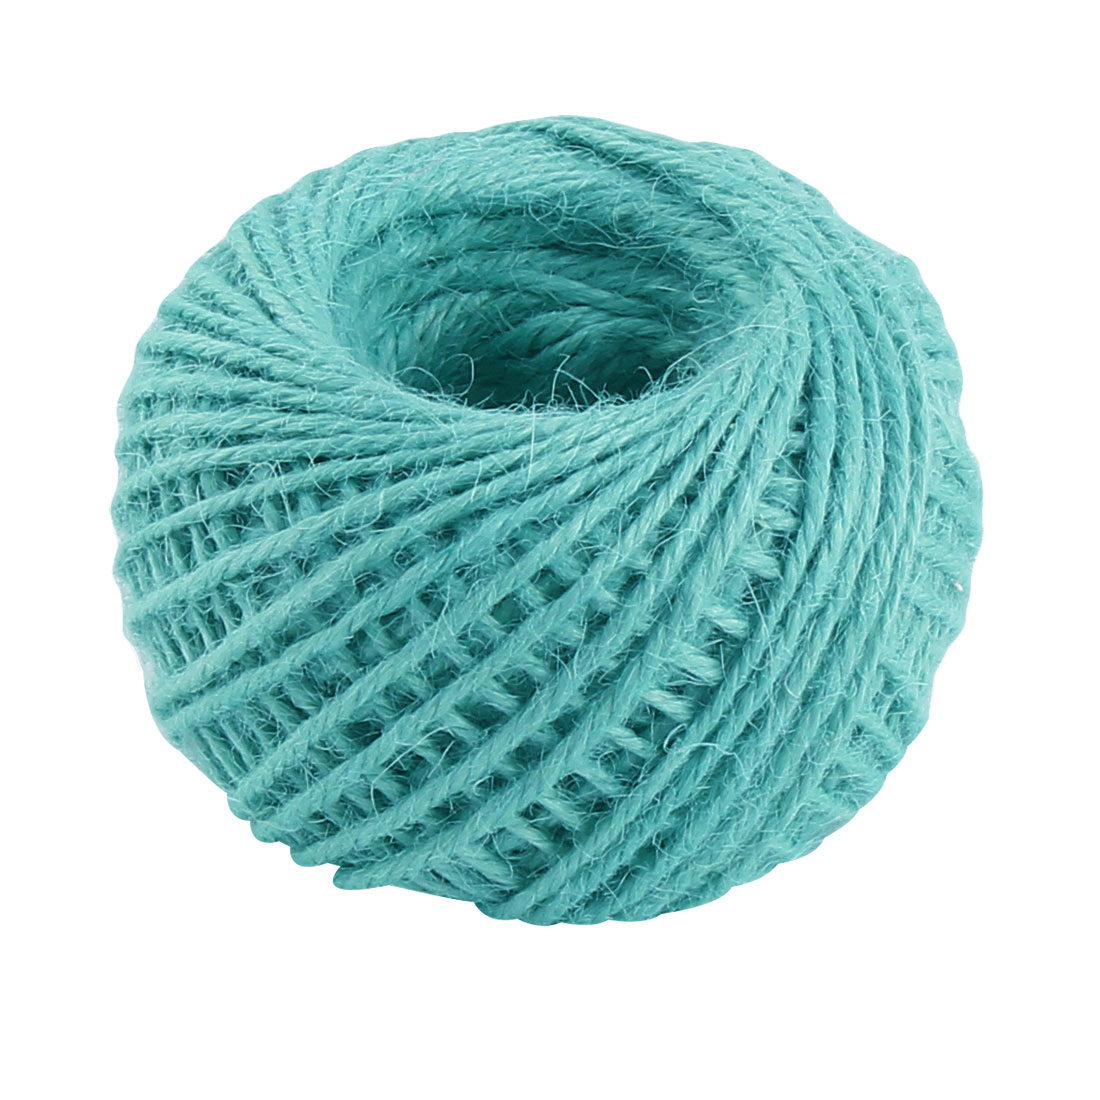 Craft Jute Burlap Ribbon Twine Rope Cord String Pack Roll Turquoise 2mm Dia 50m Length